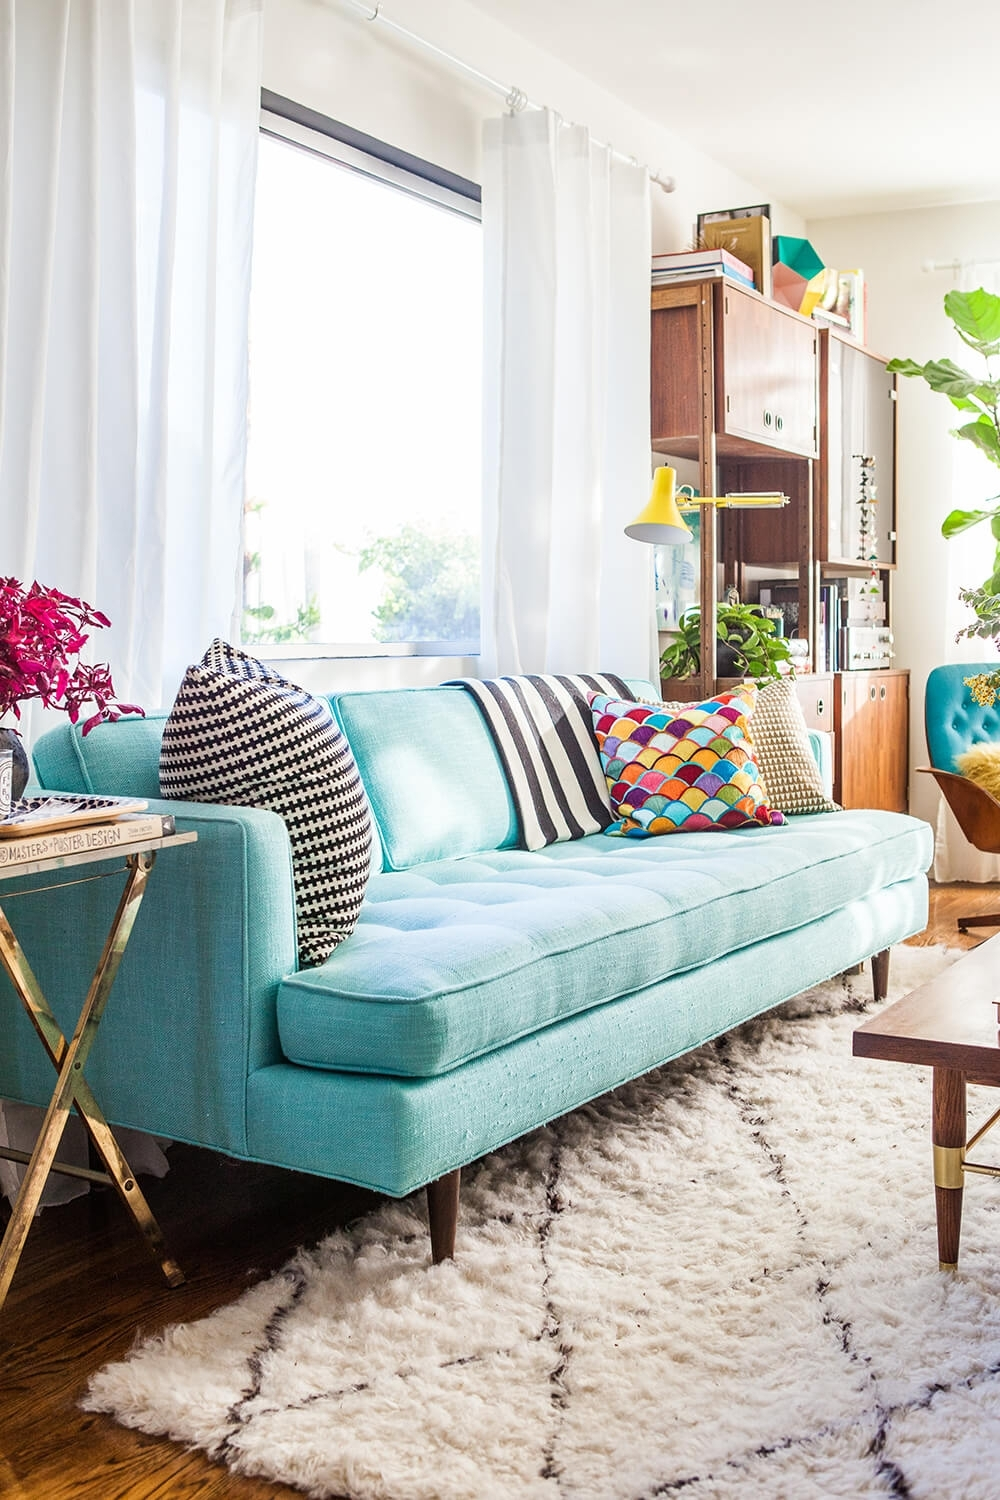 84 Affordable Amazing Sofas Under $1000 – Emily Henderson In Adeline 3 Piece Sectionals (Image 2 of 25)